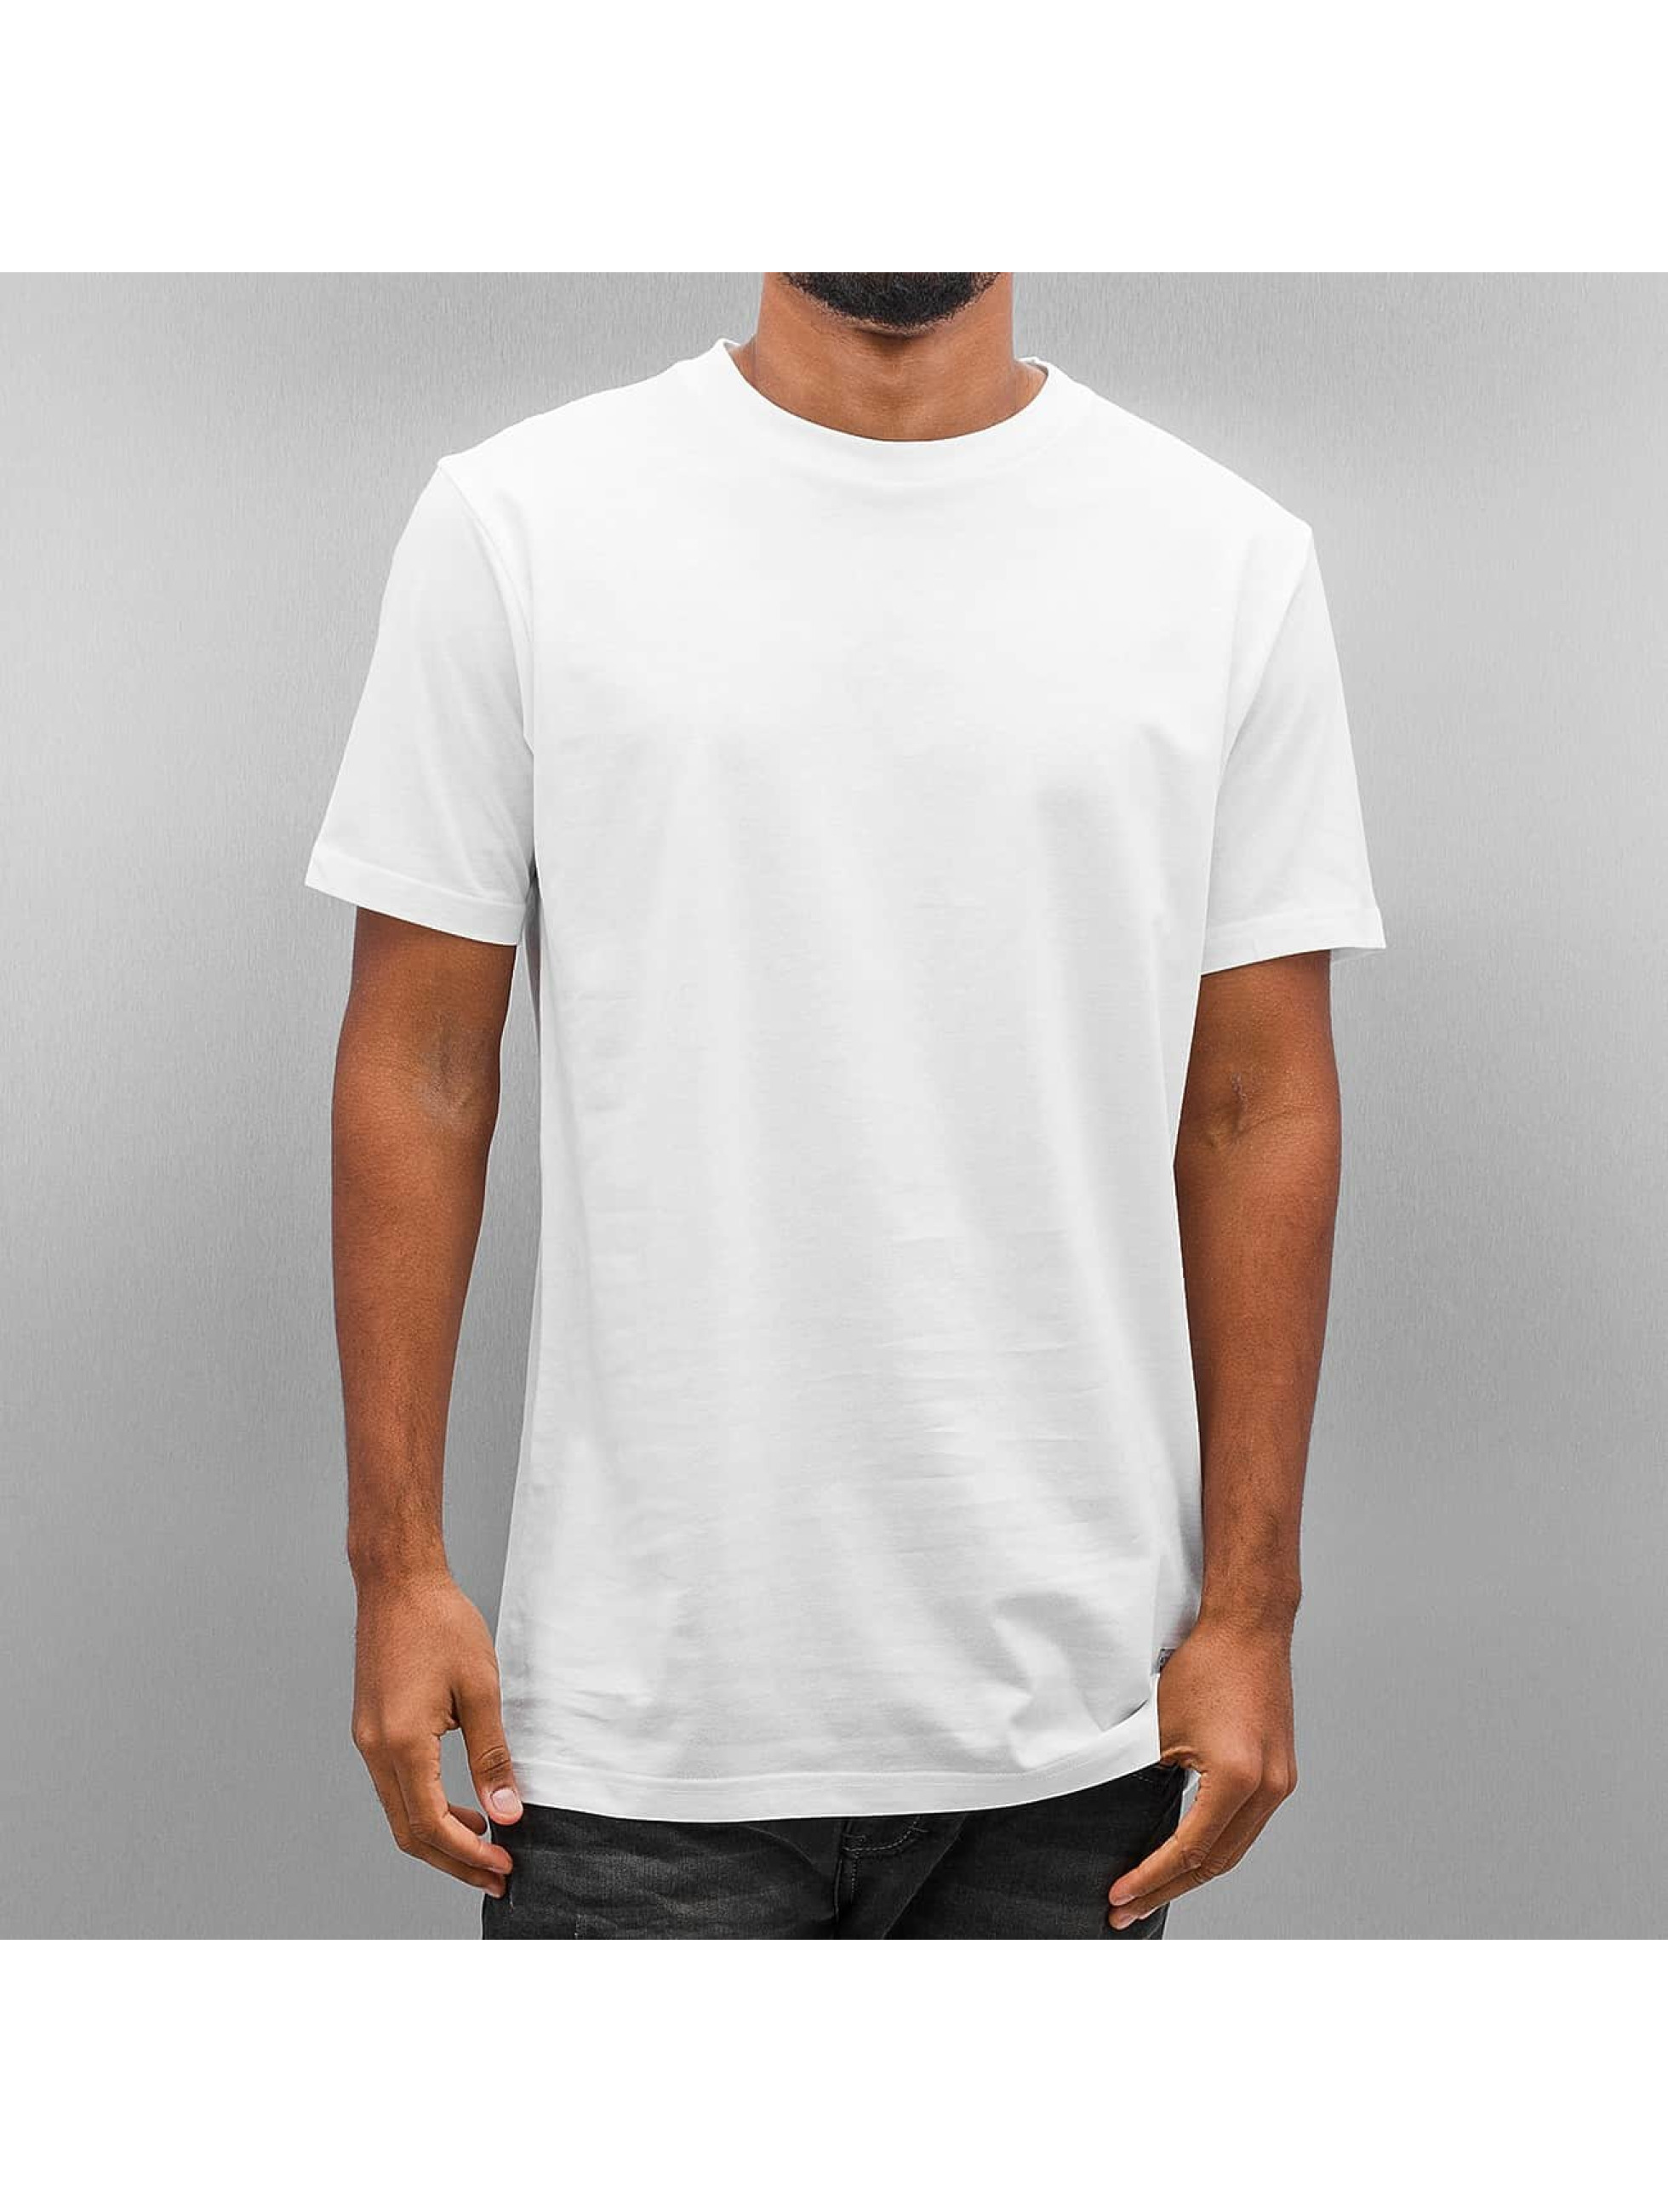 K1X T-Shirt Authentic white